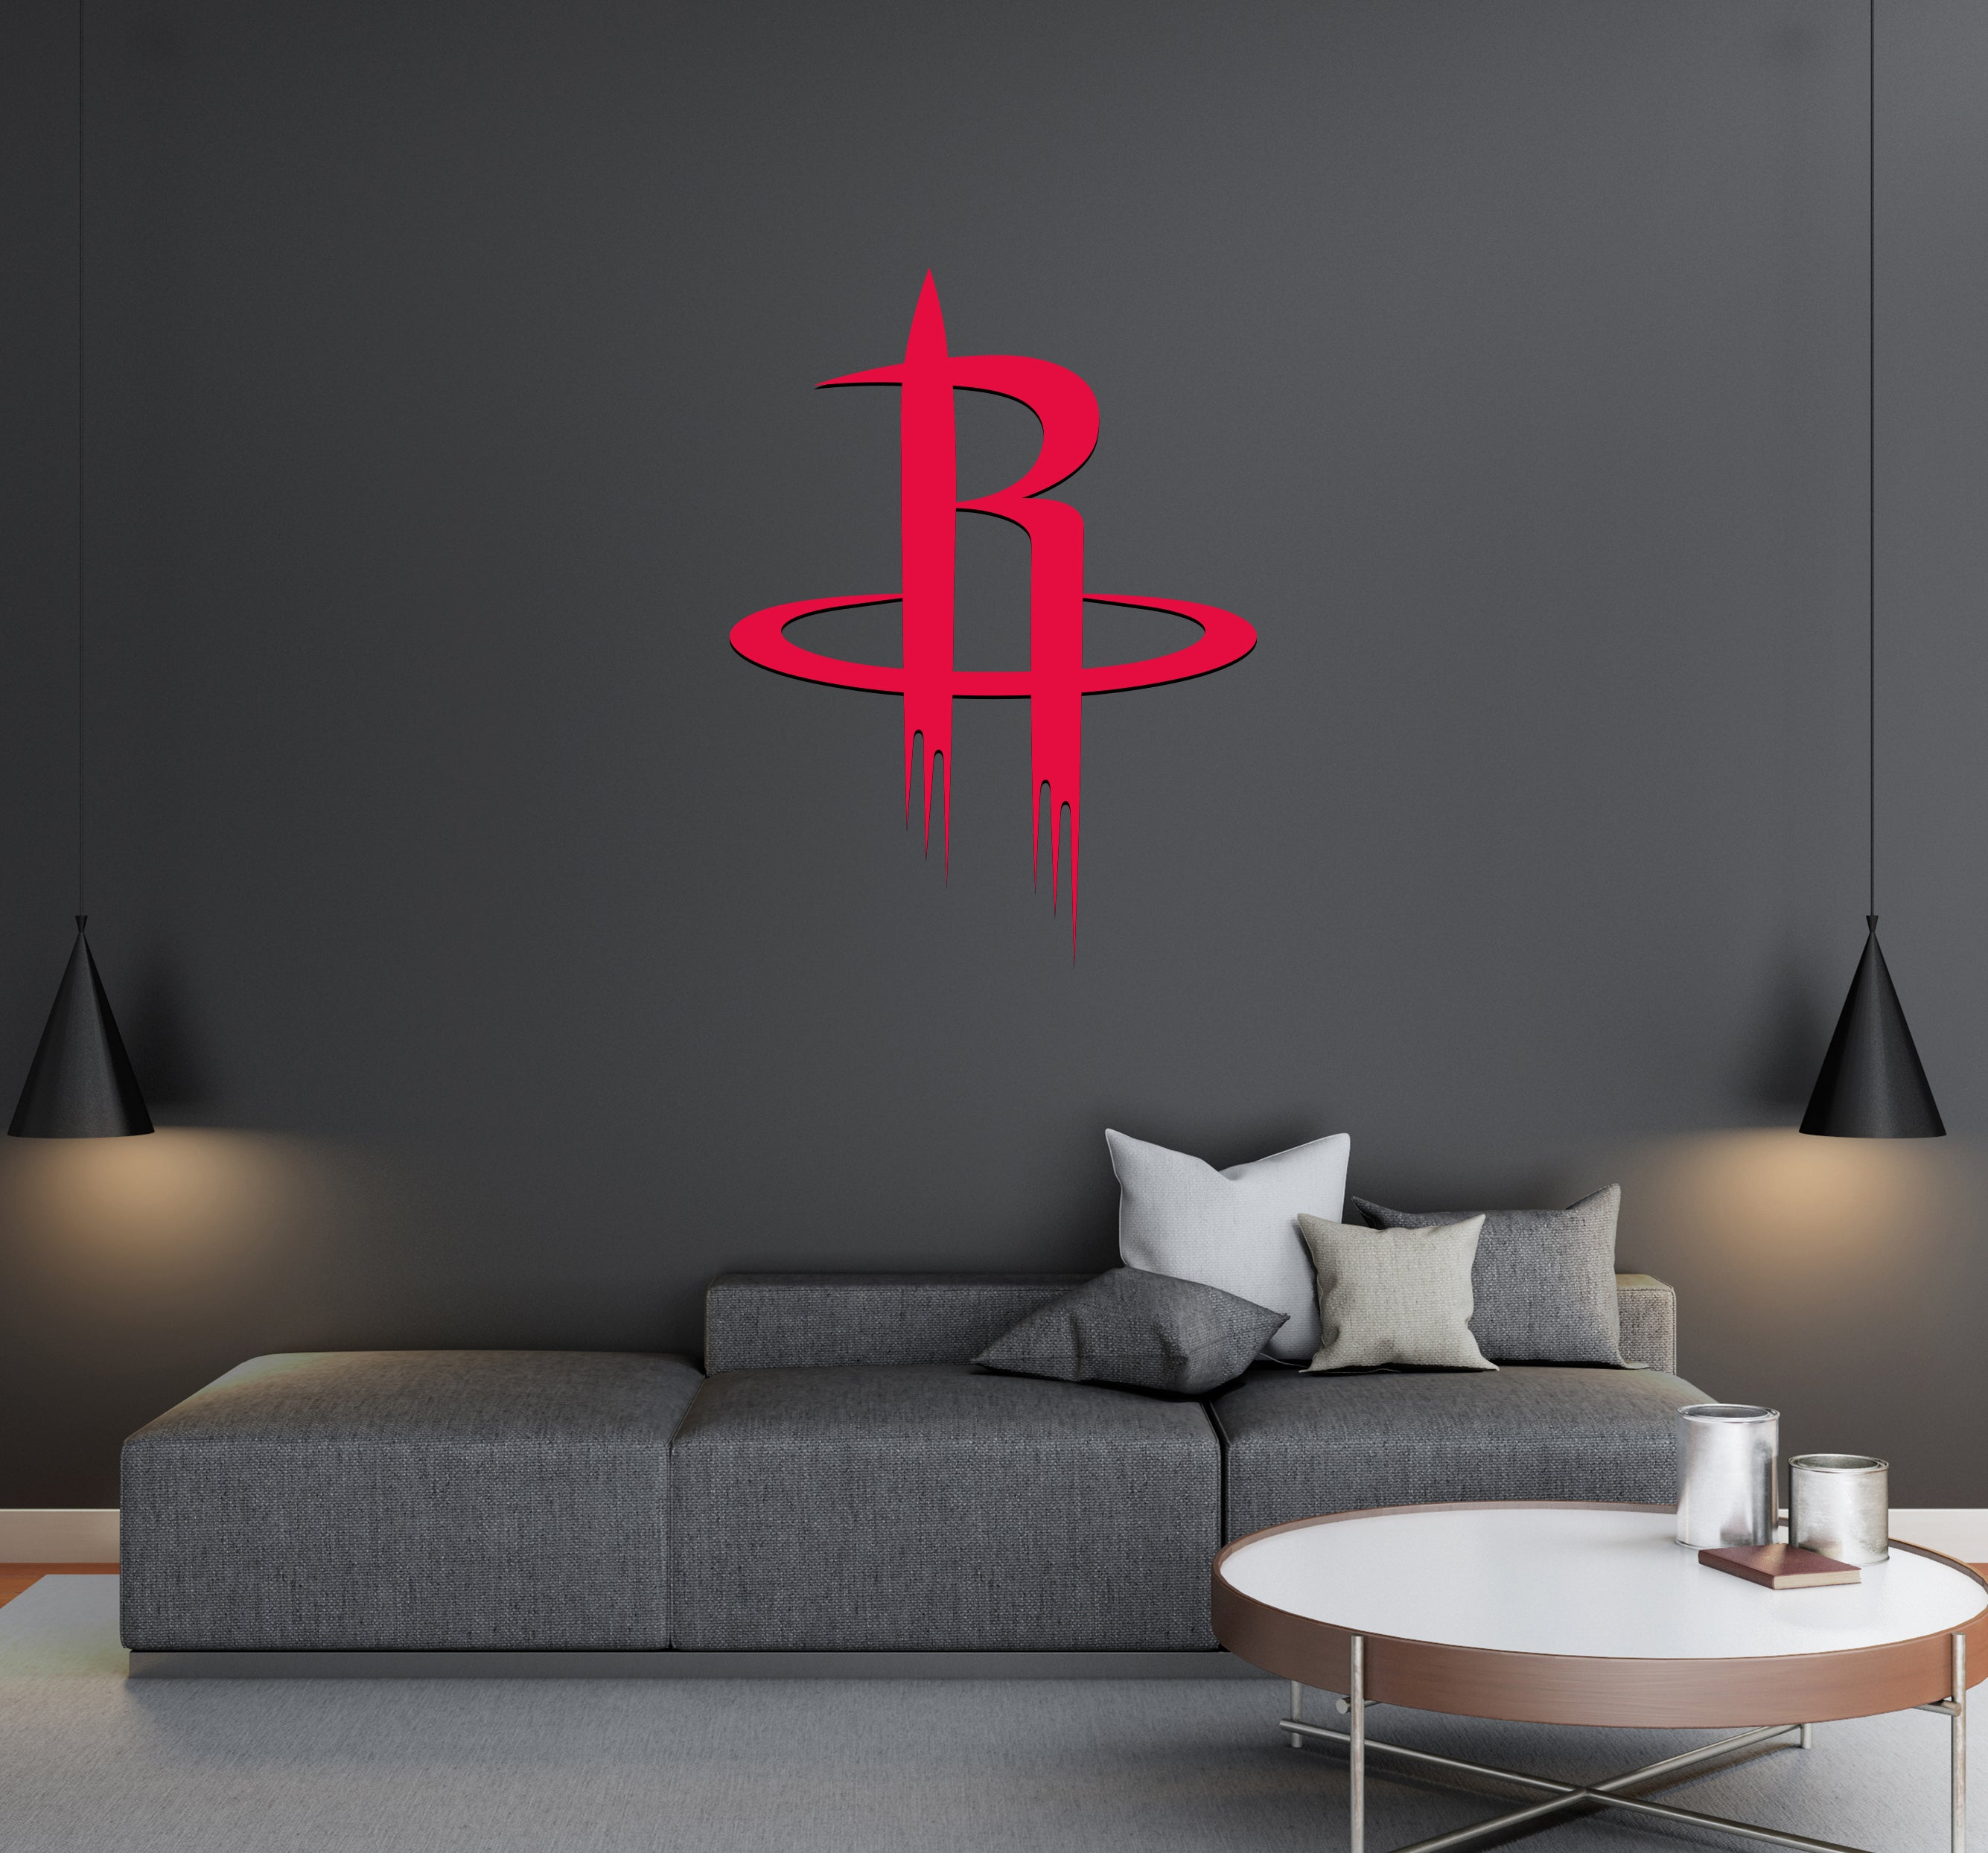 Houston Rockets - NBA Basketball Team Logo - Wall Decal Removable & Reusable For Home Bedroom